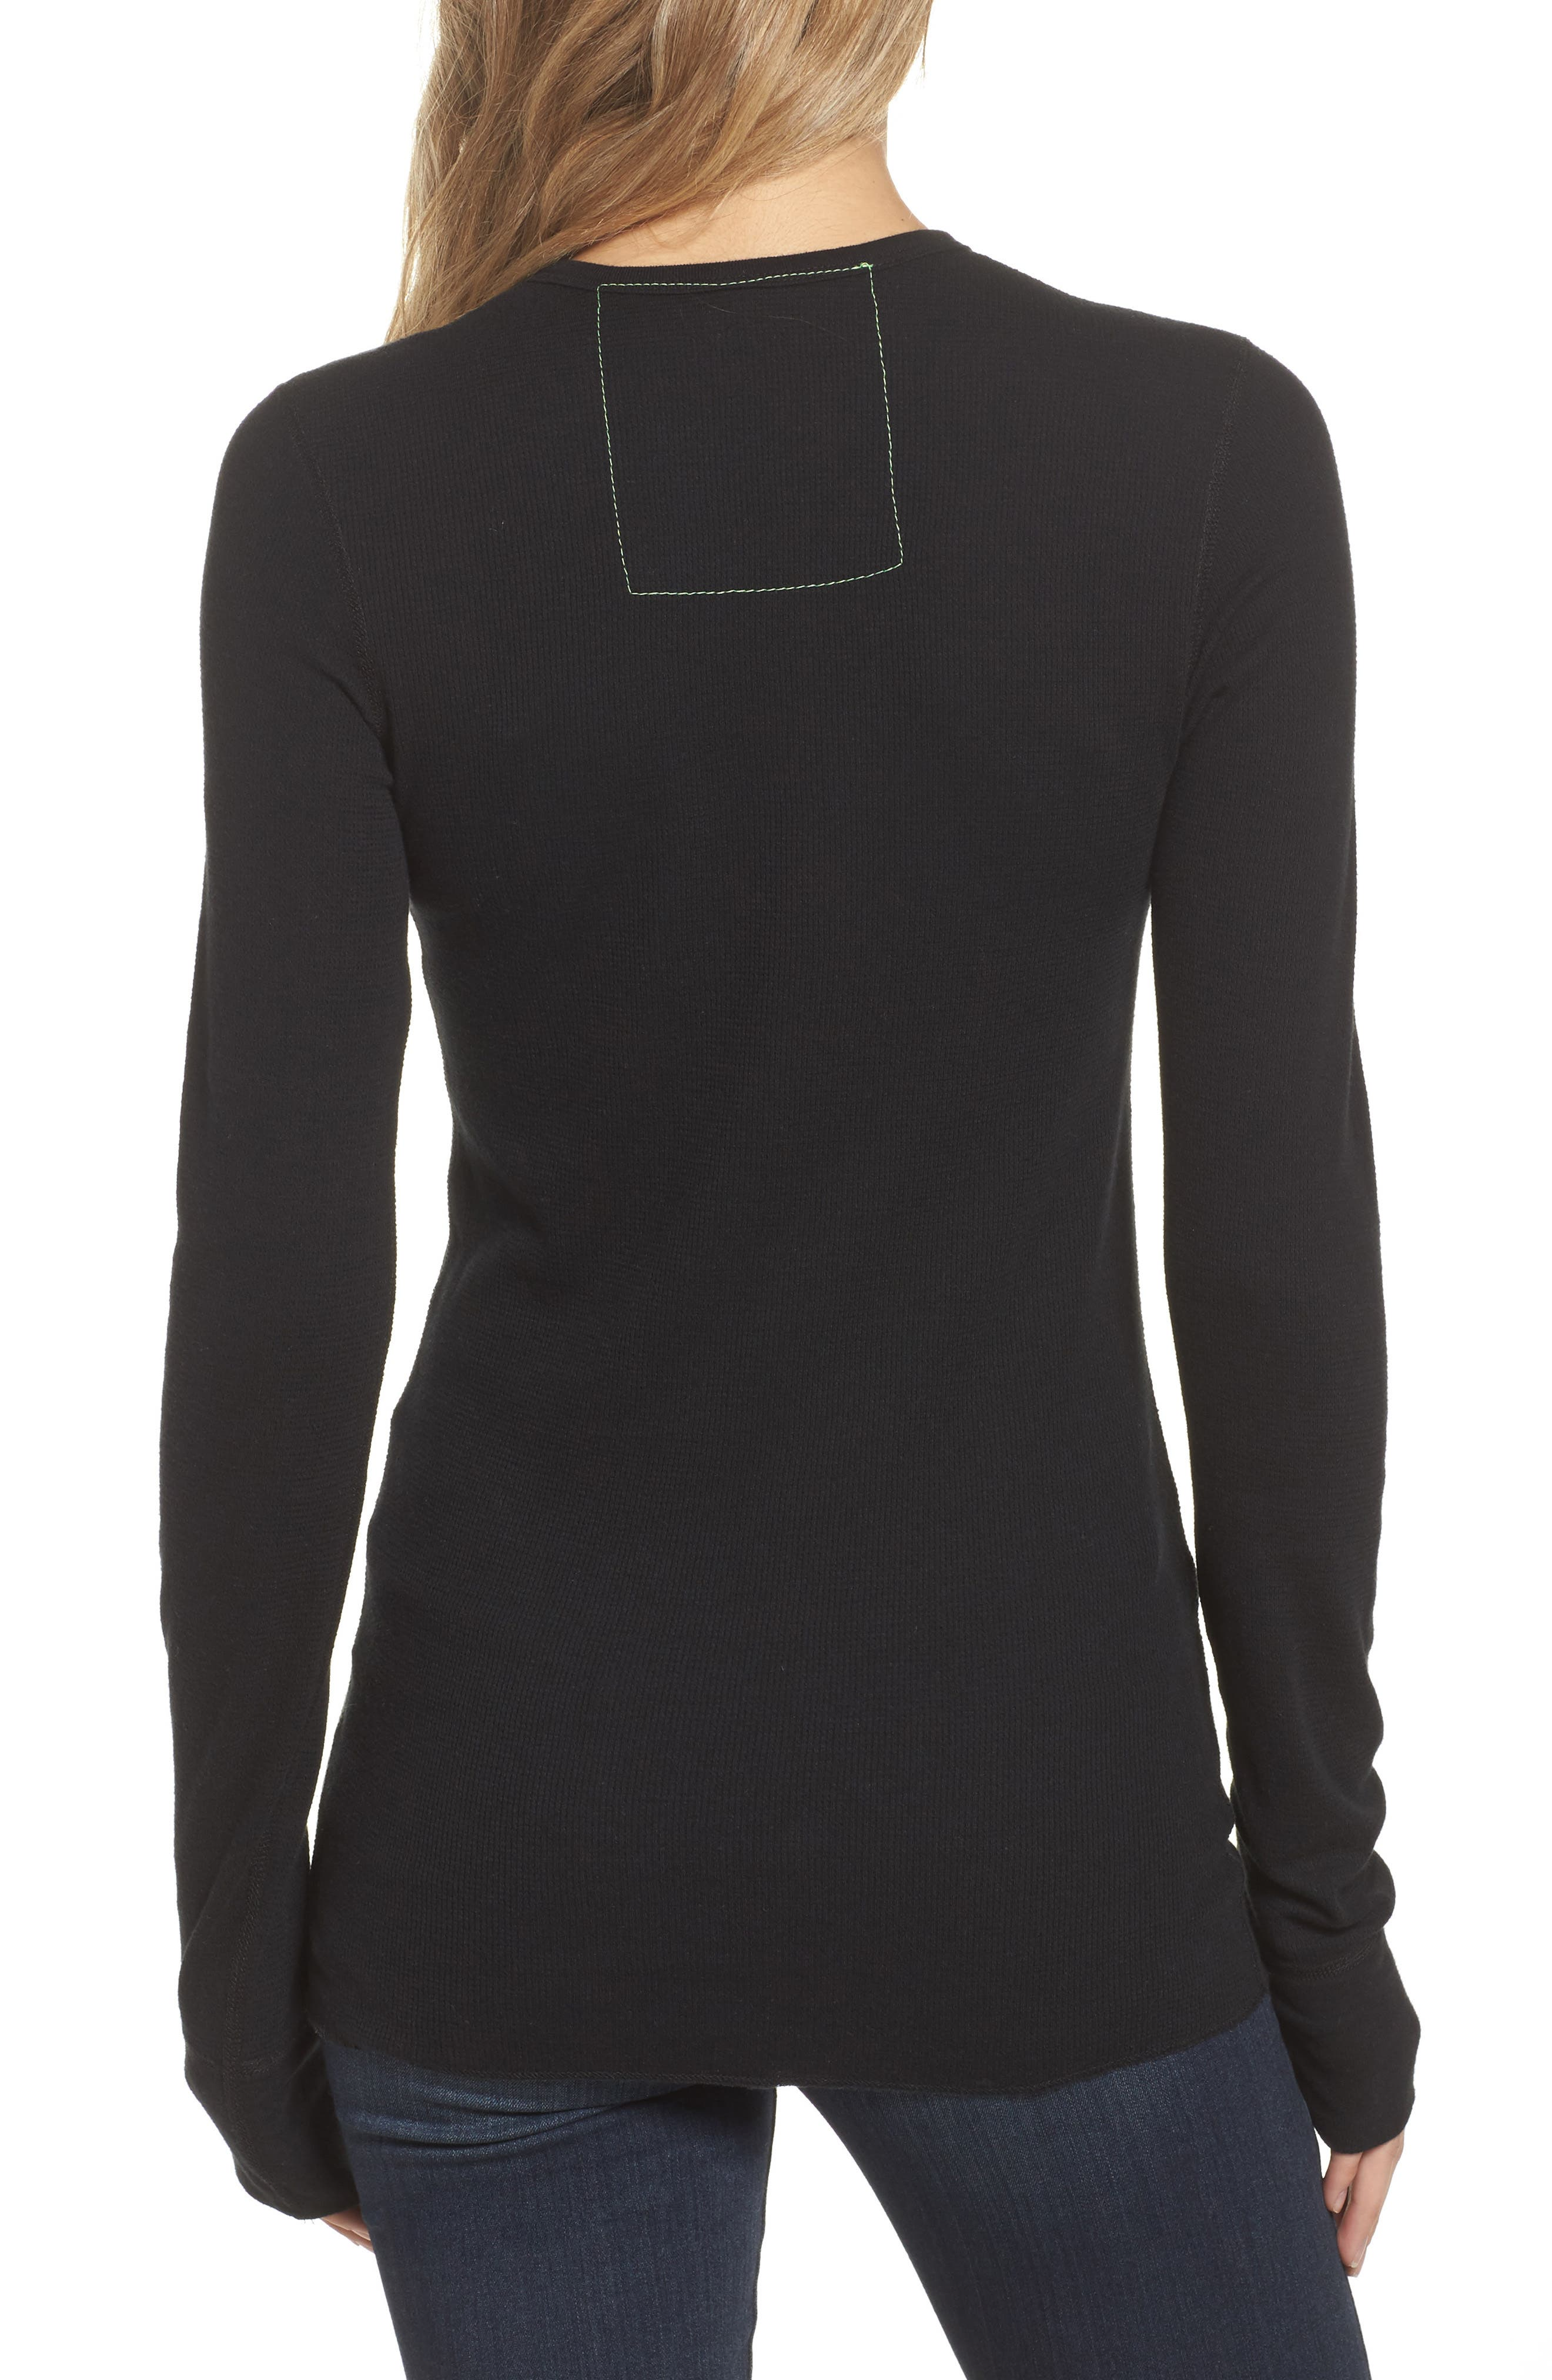 Bolt Thermal Top,                             Alternate thumbnail 2, color,                             030